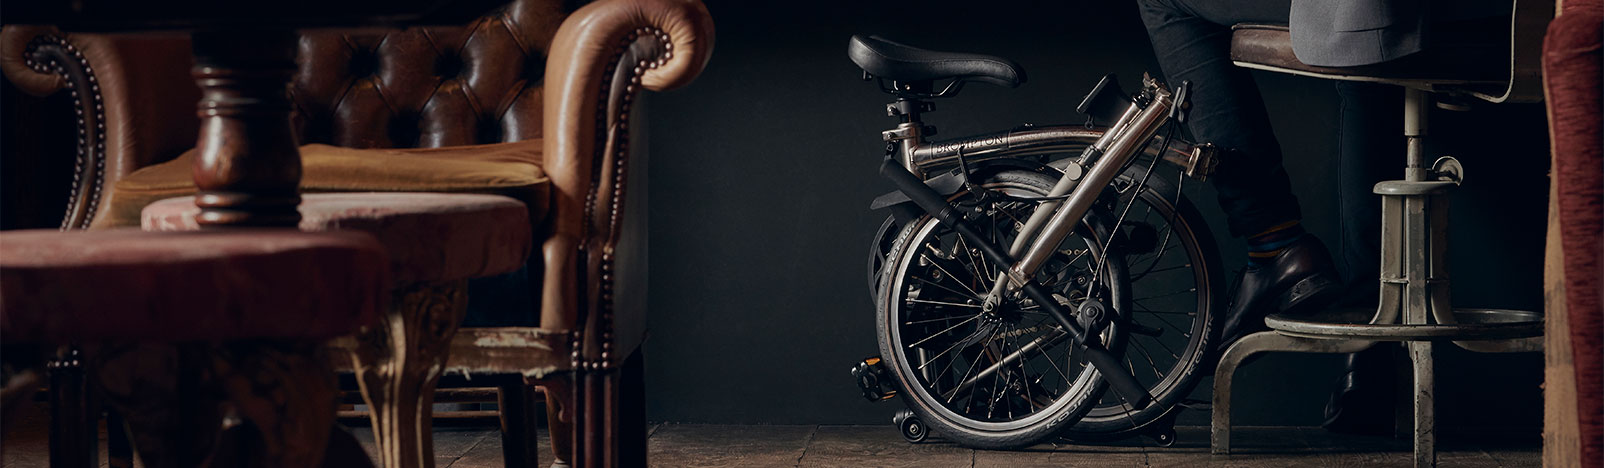 Brompton Nickel Edition folding bike